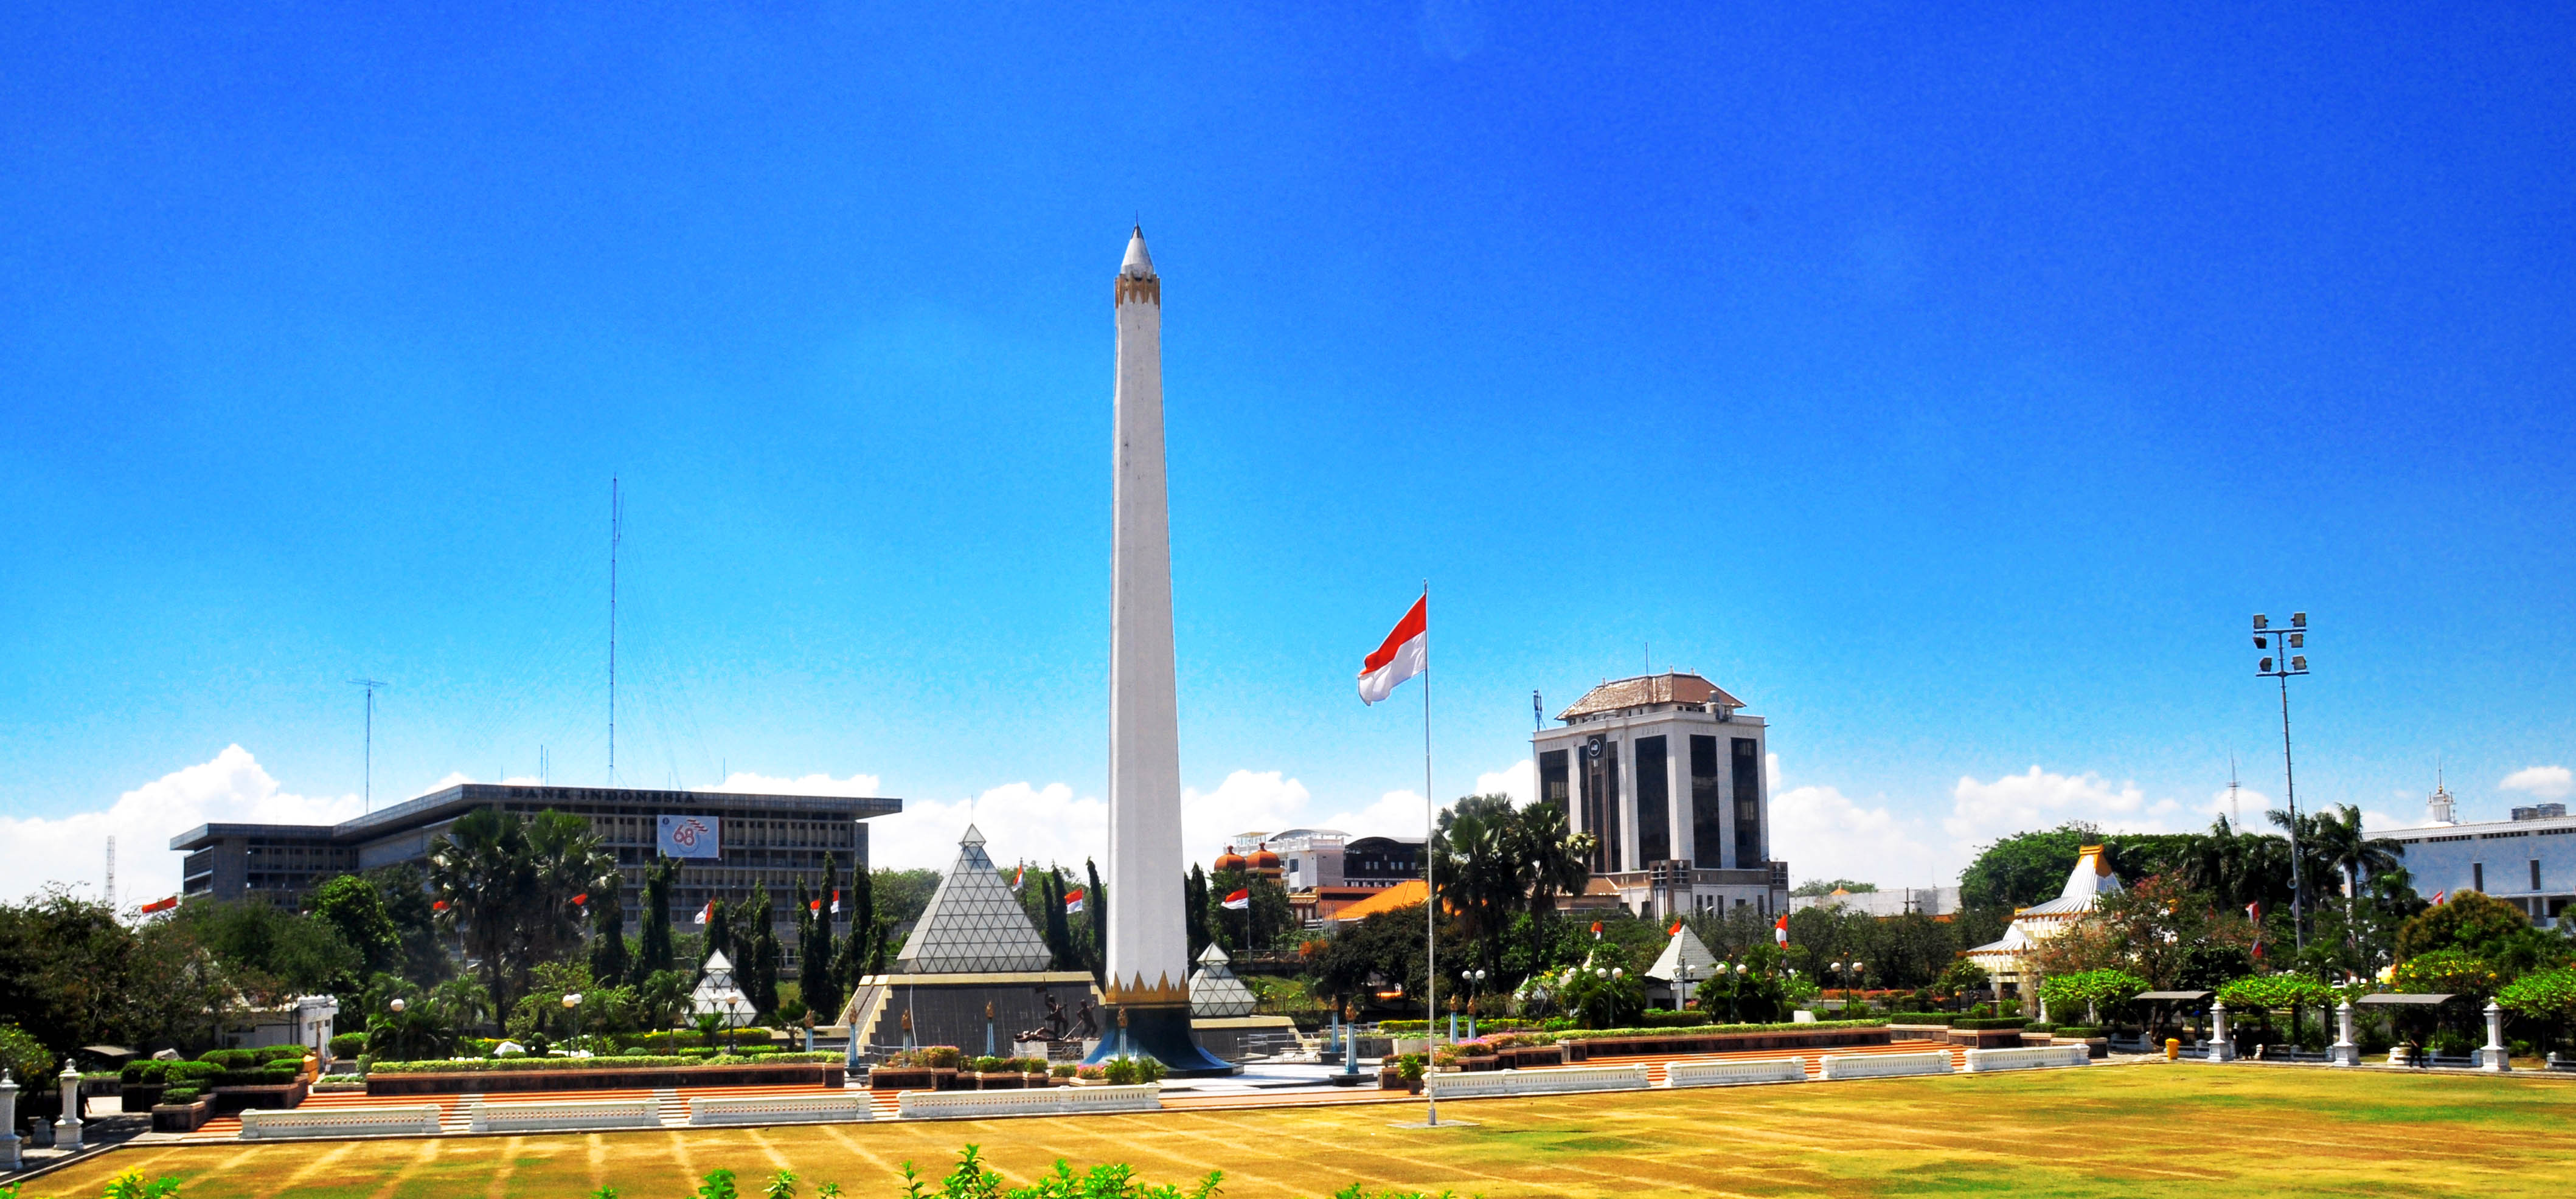 surabaya s top 10 interesting sites indonesia expat interesting sites indonesia expat